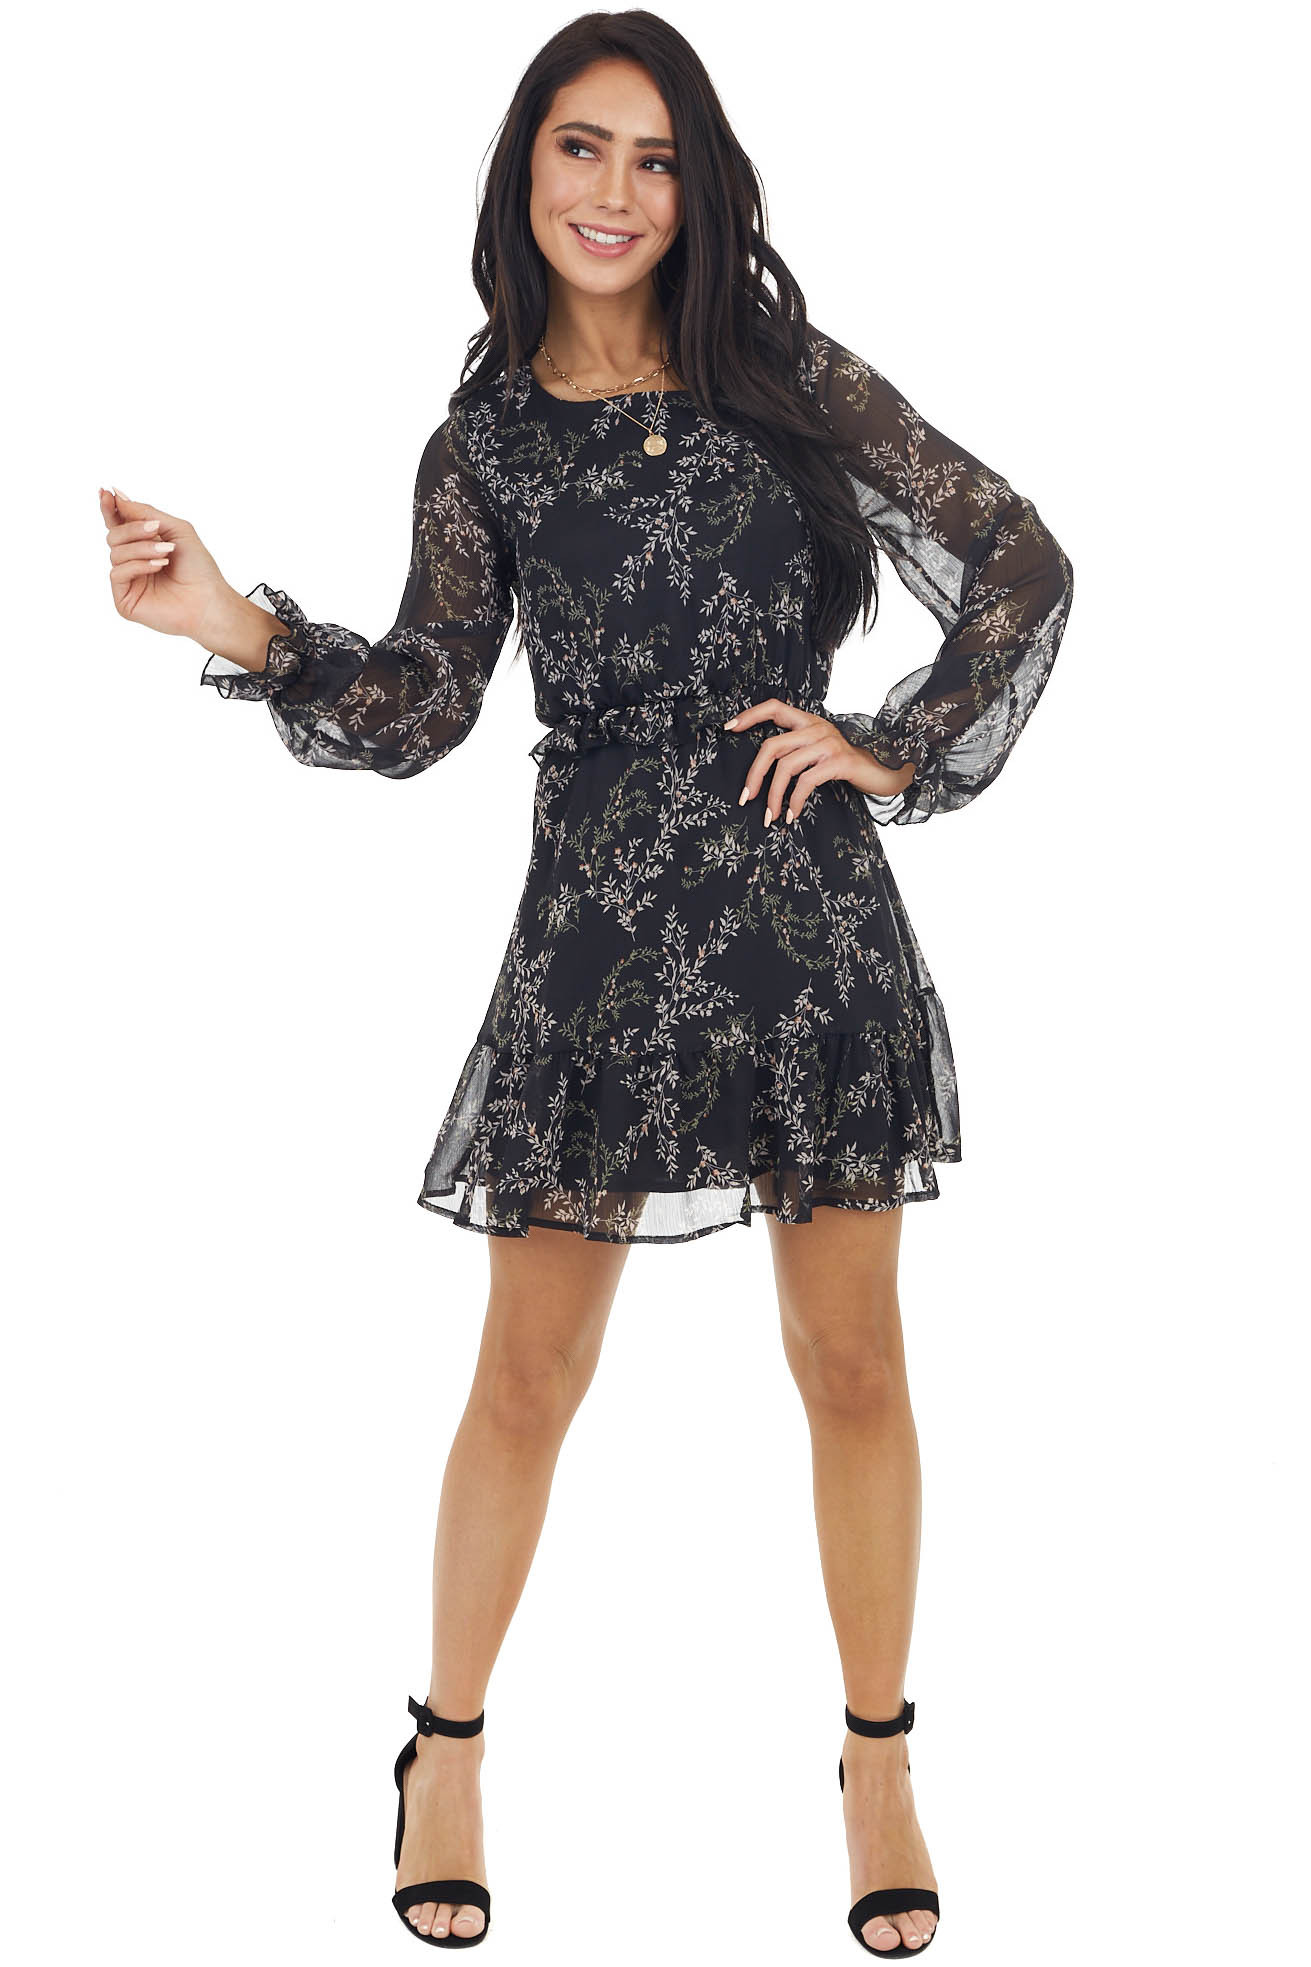 Black Floral Print Ruffle Mini Dress with Cinch Waist